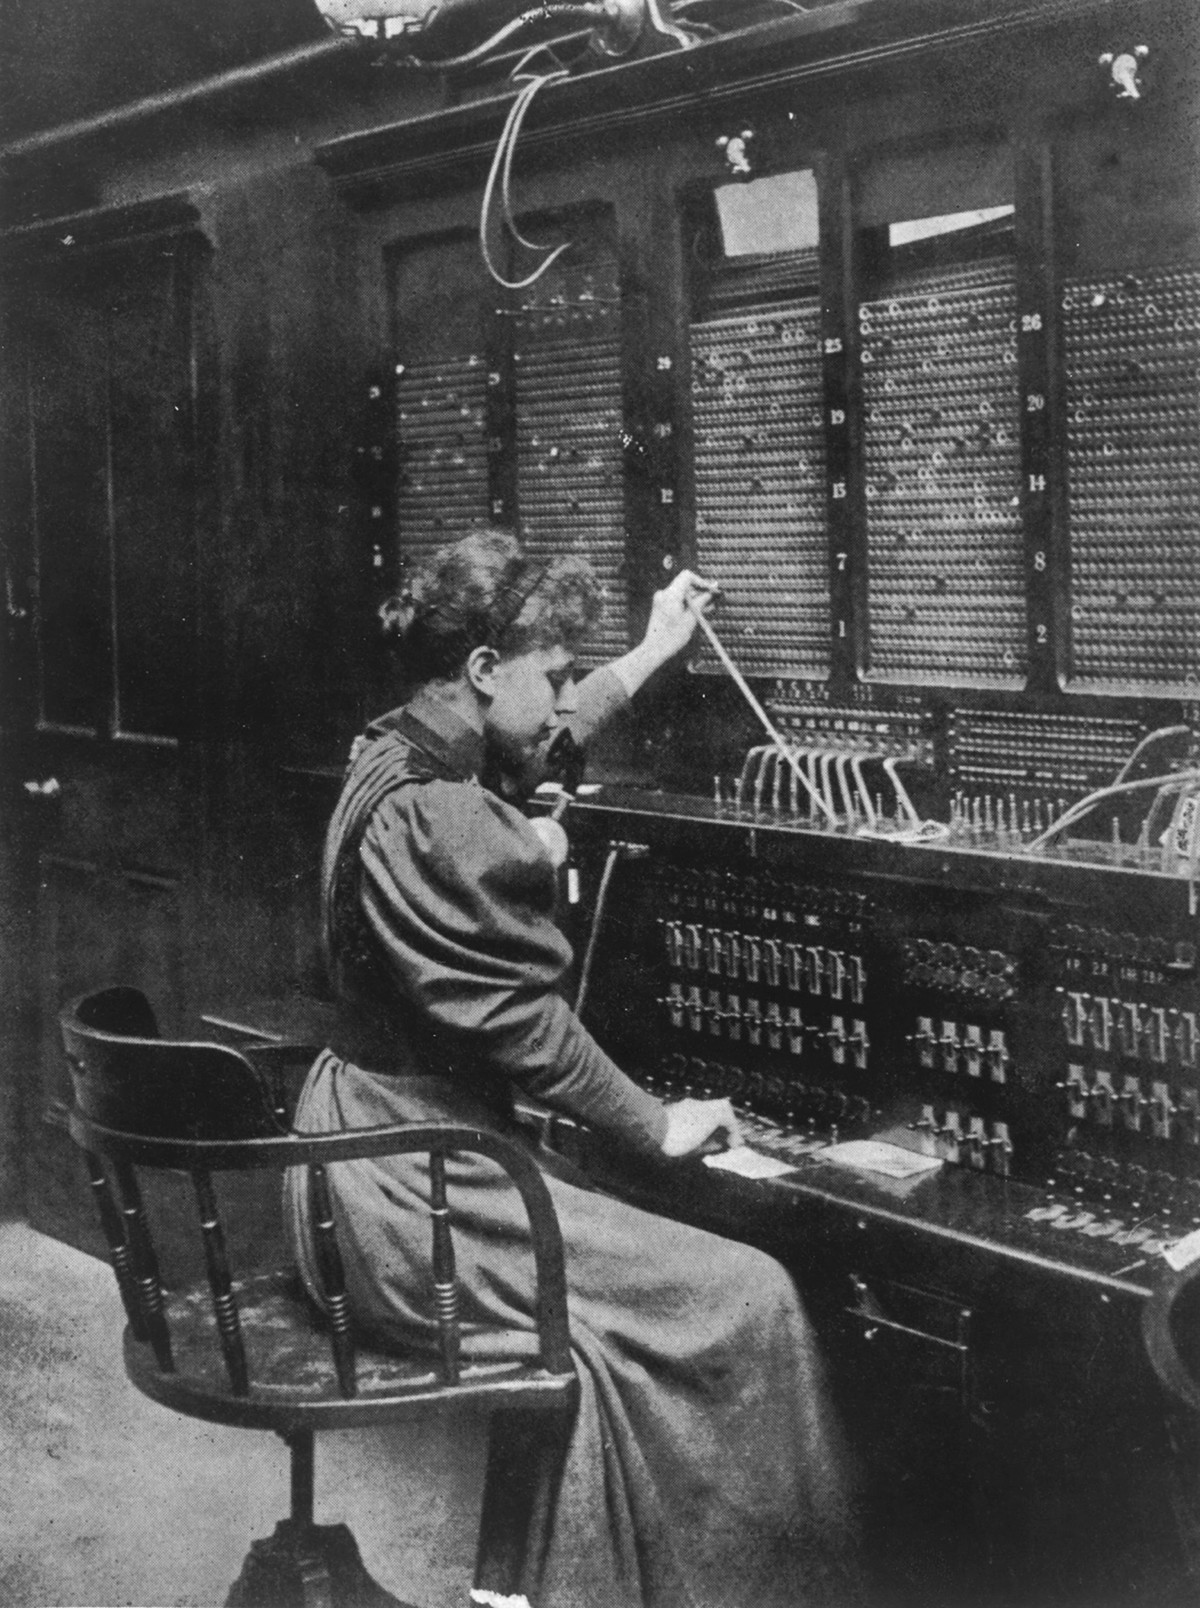 The routine of a telephone operator